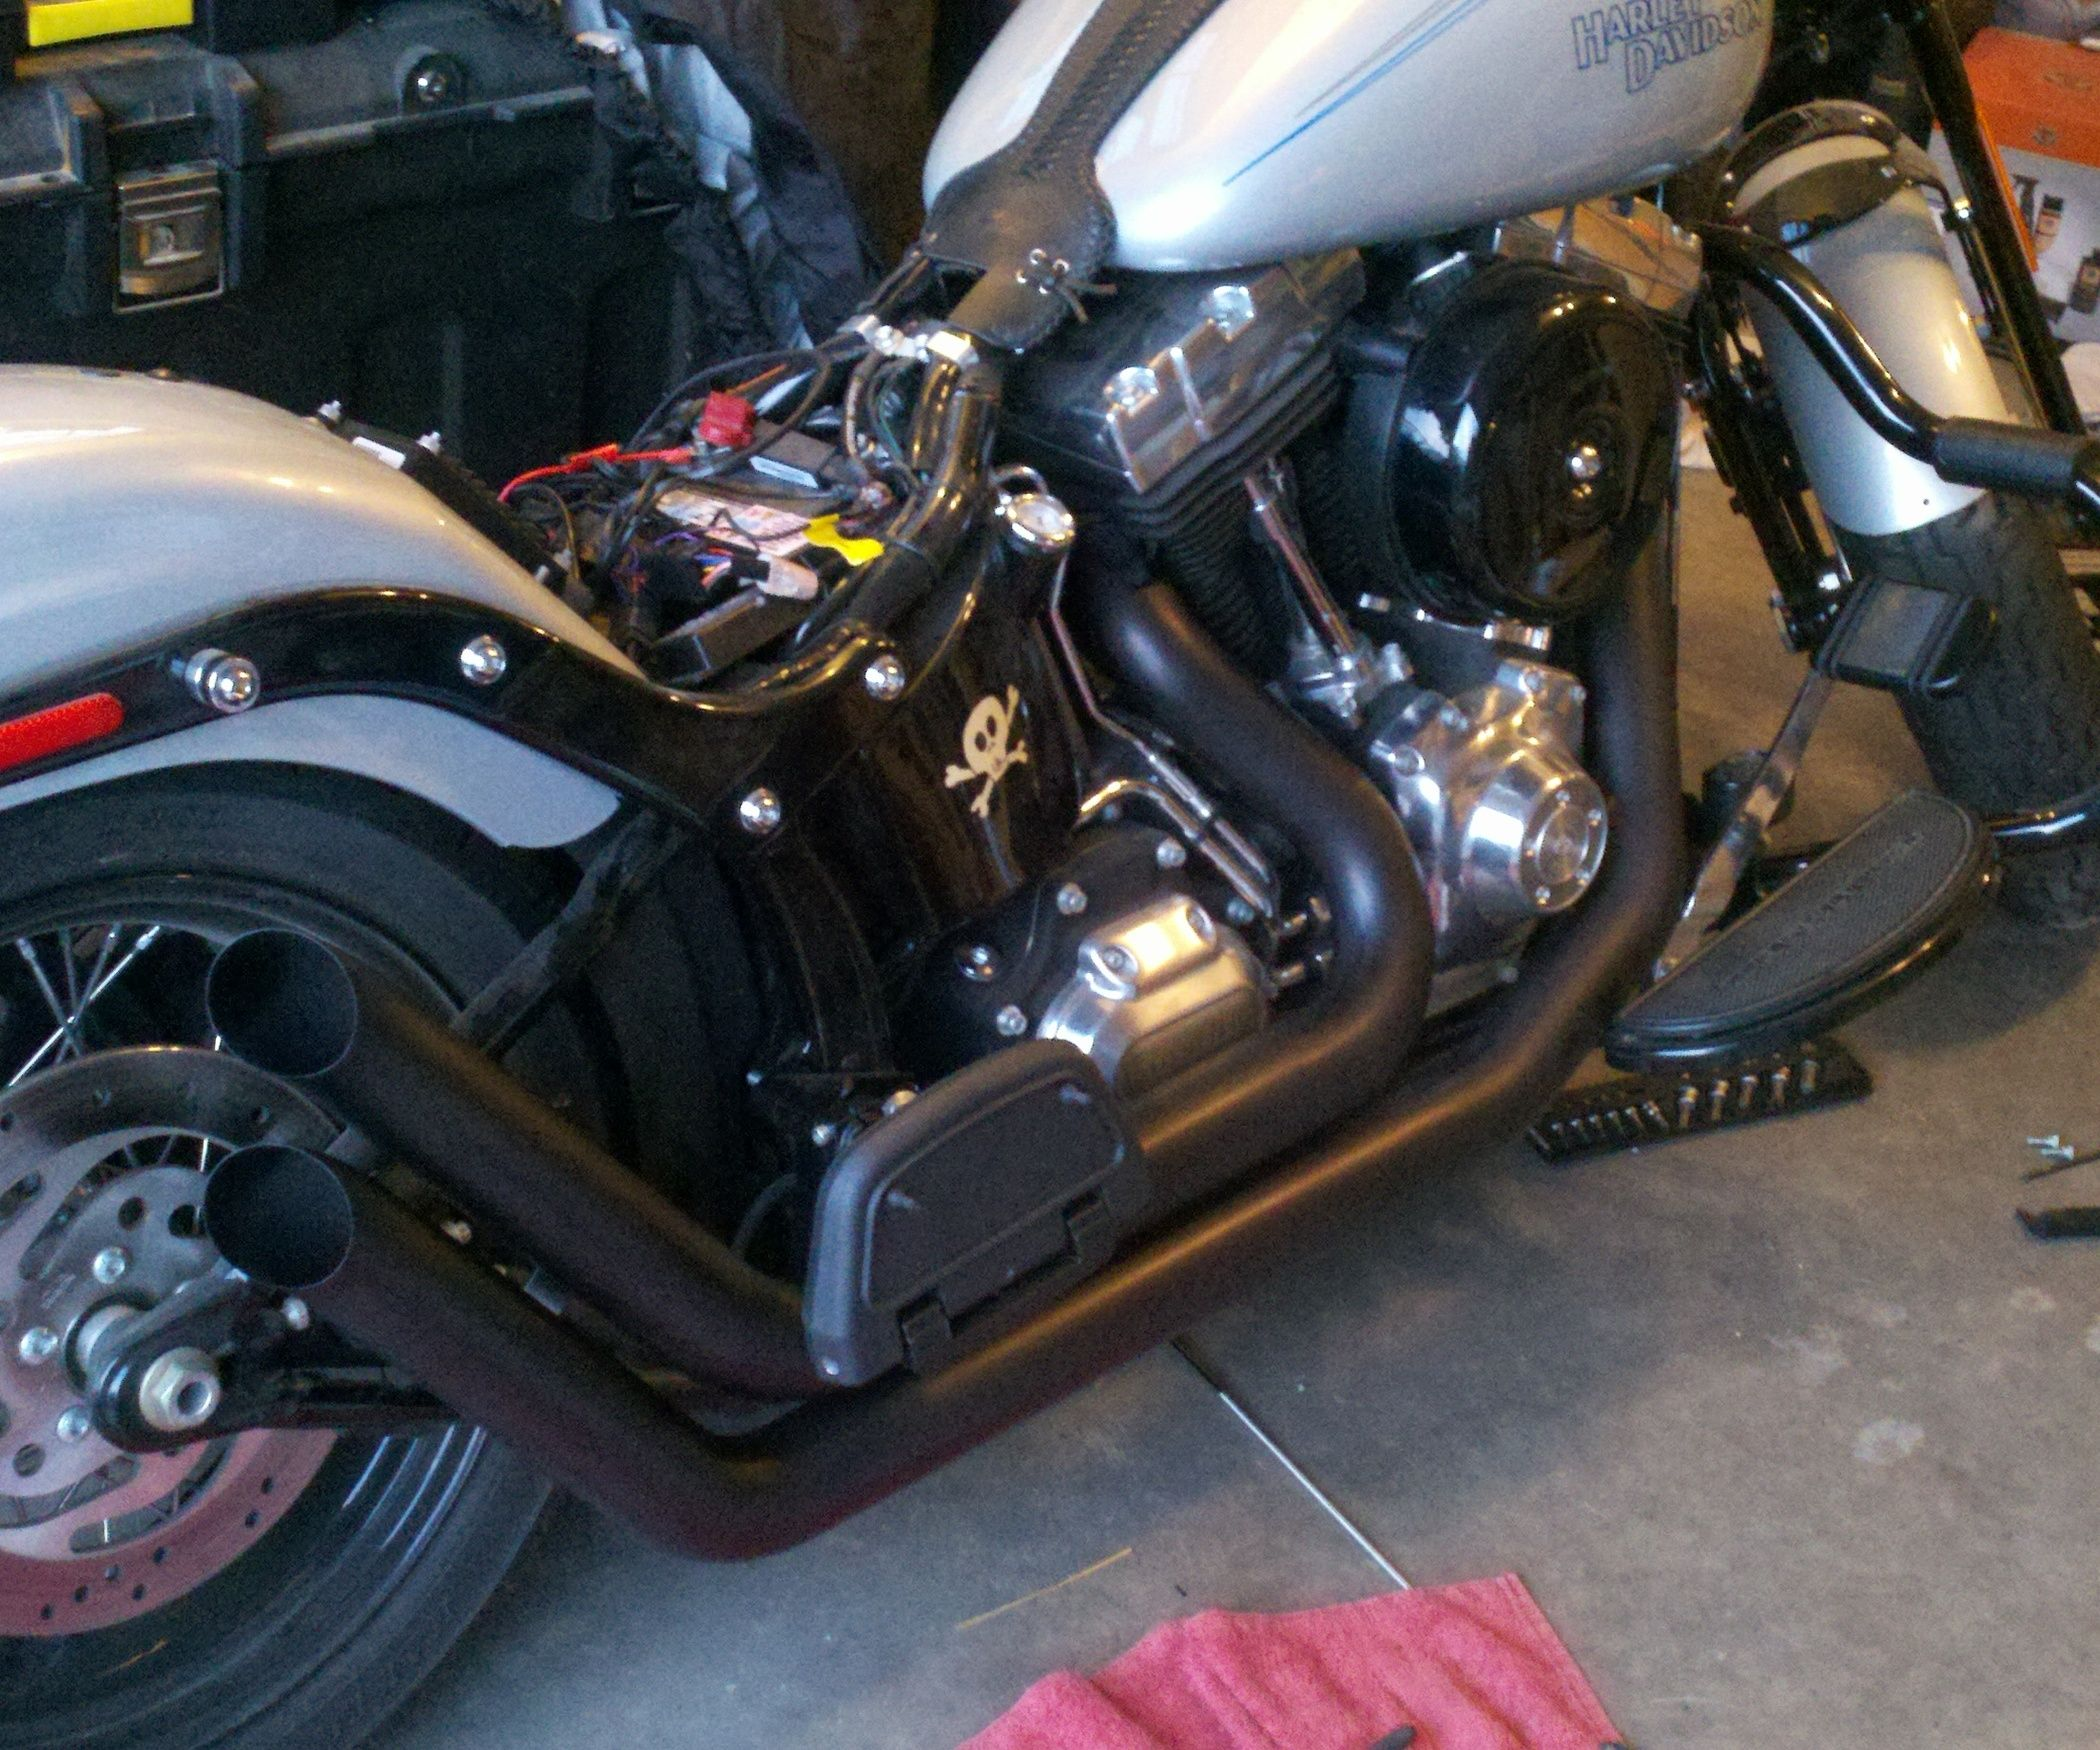 How To Repair And Repaint Motorcycle Exhaust Pipes With Images Motorcycle Exhaust Pipes Bike Repair Motorcycle Exhaust